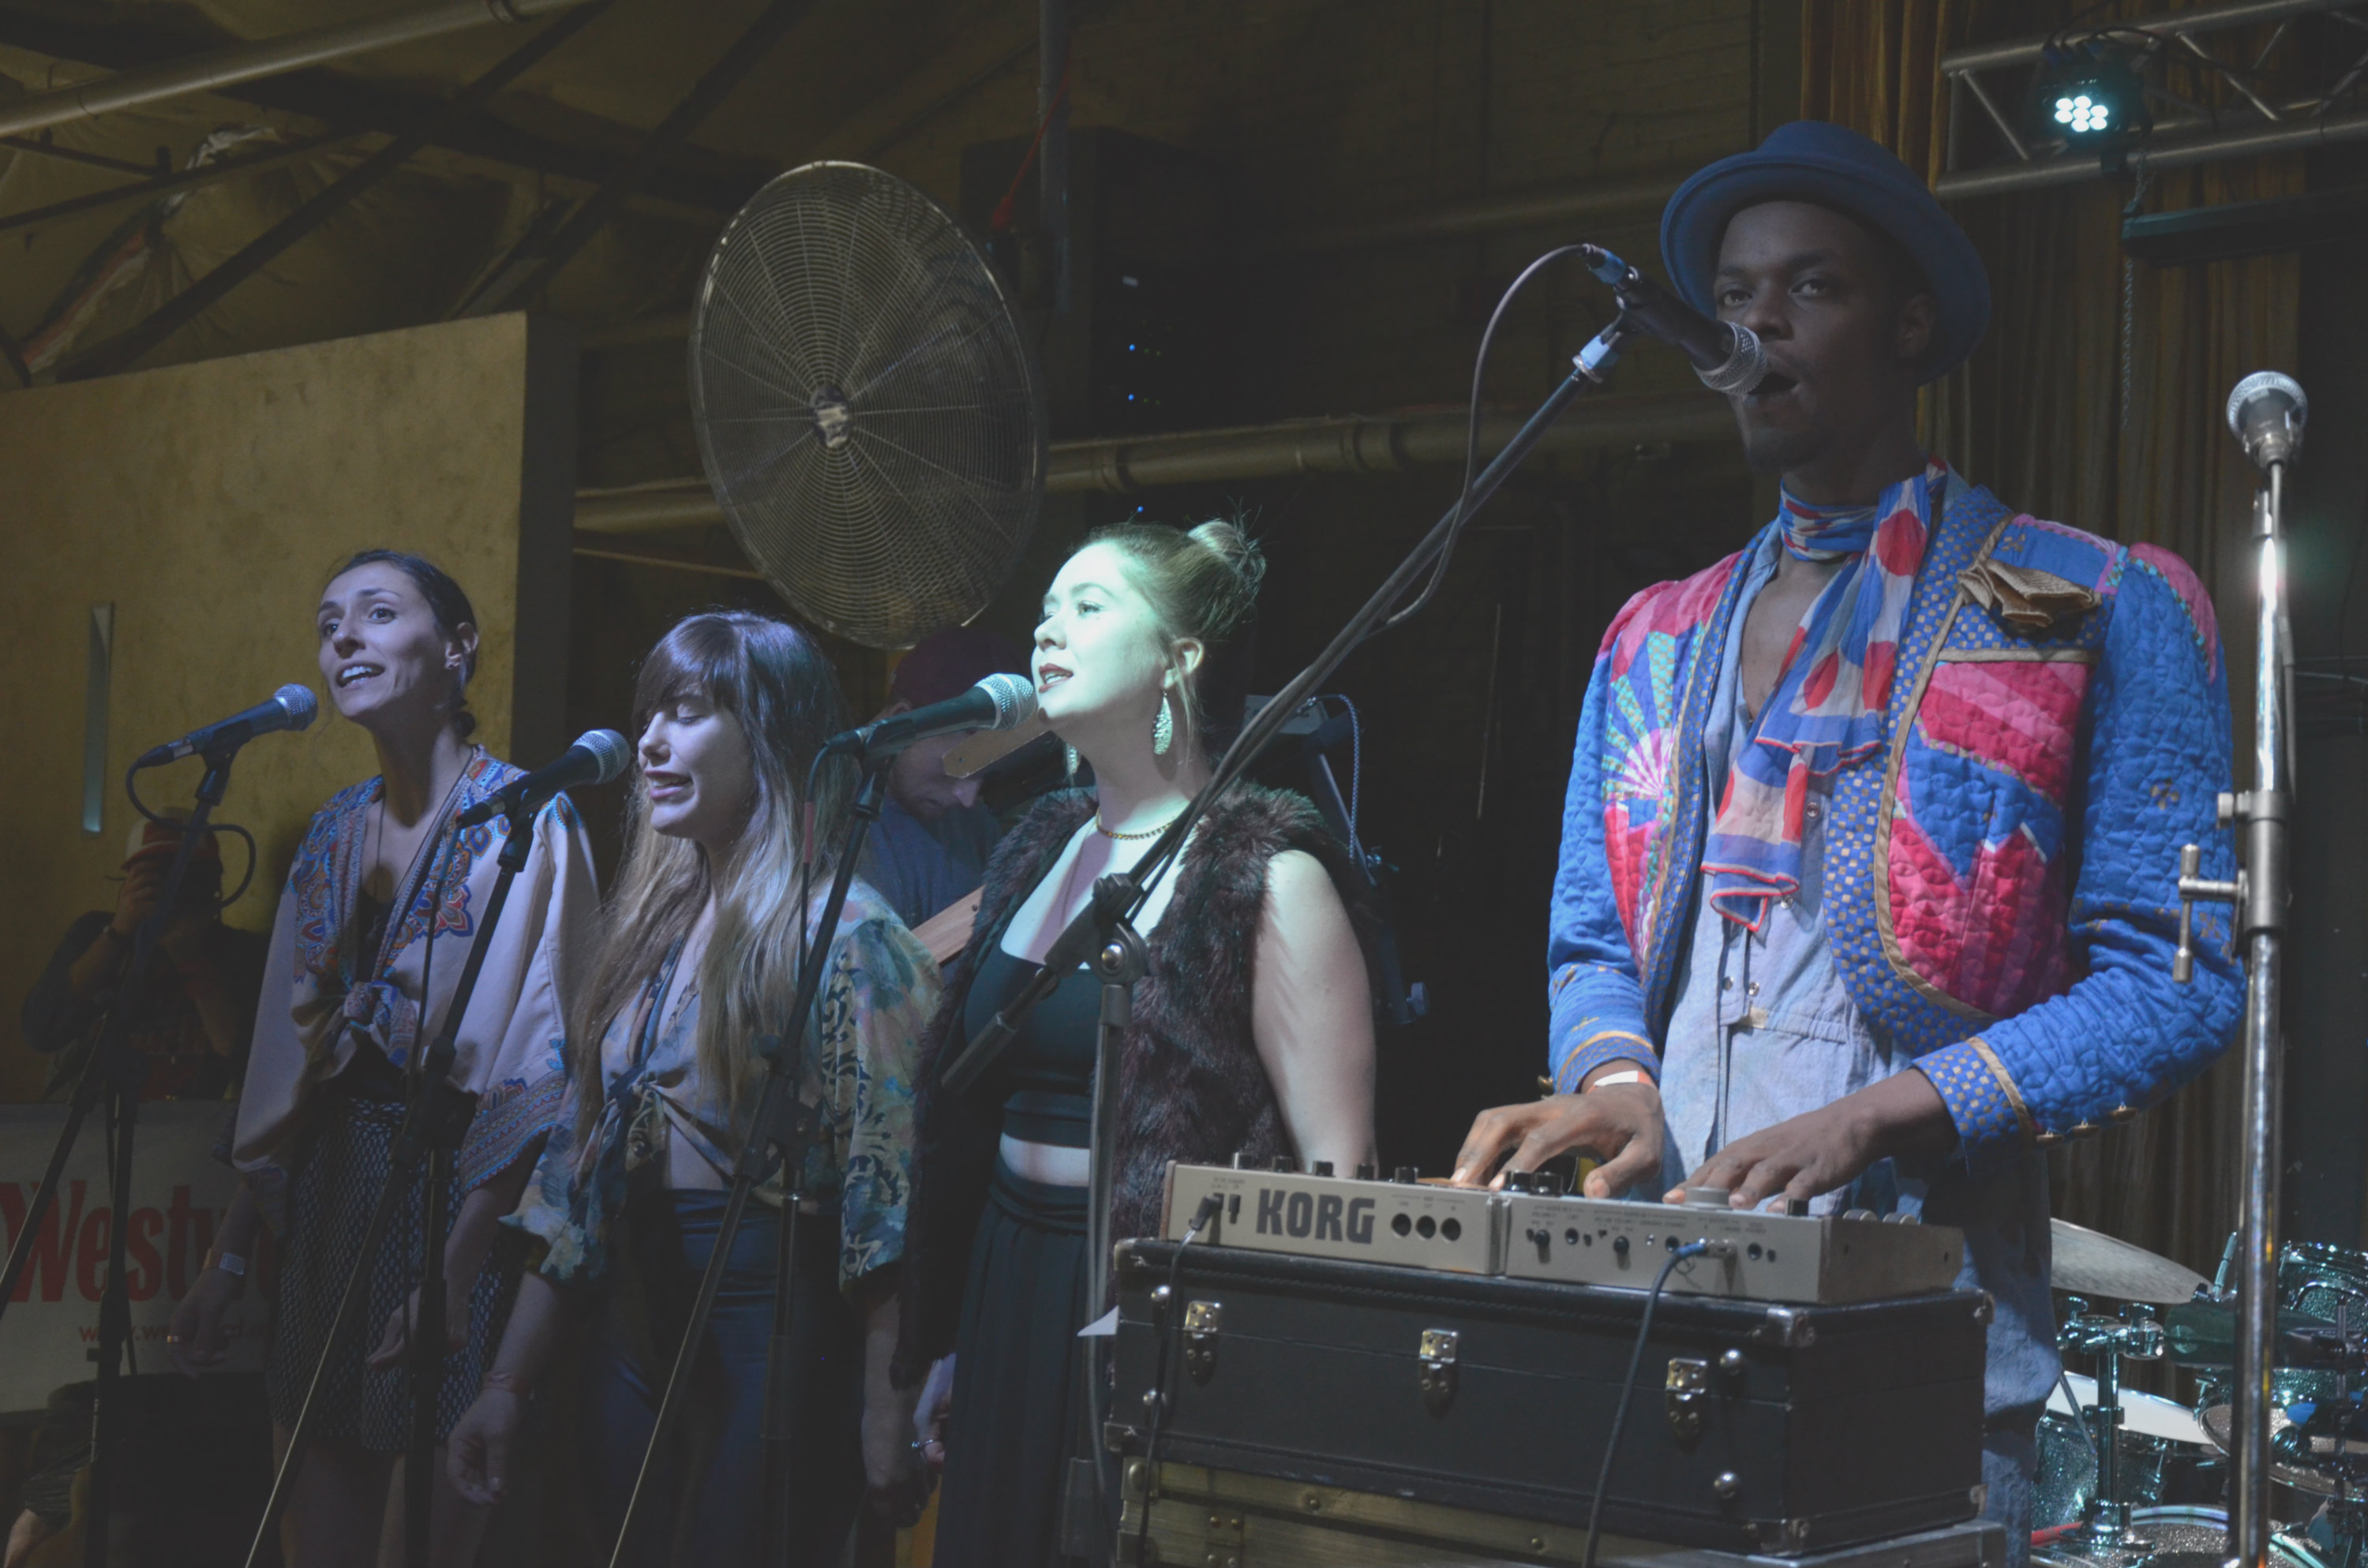 Photo: The Other Black at Westword Music Showcase 2017